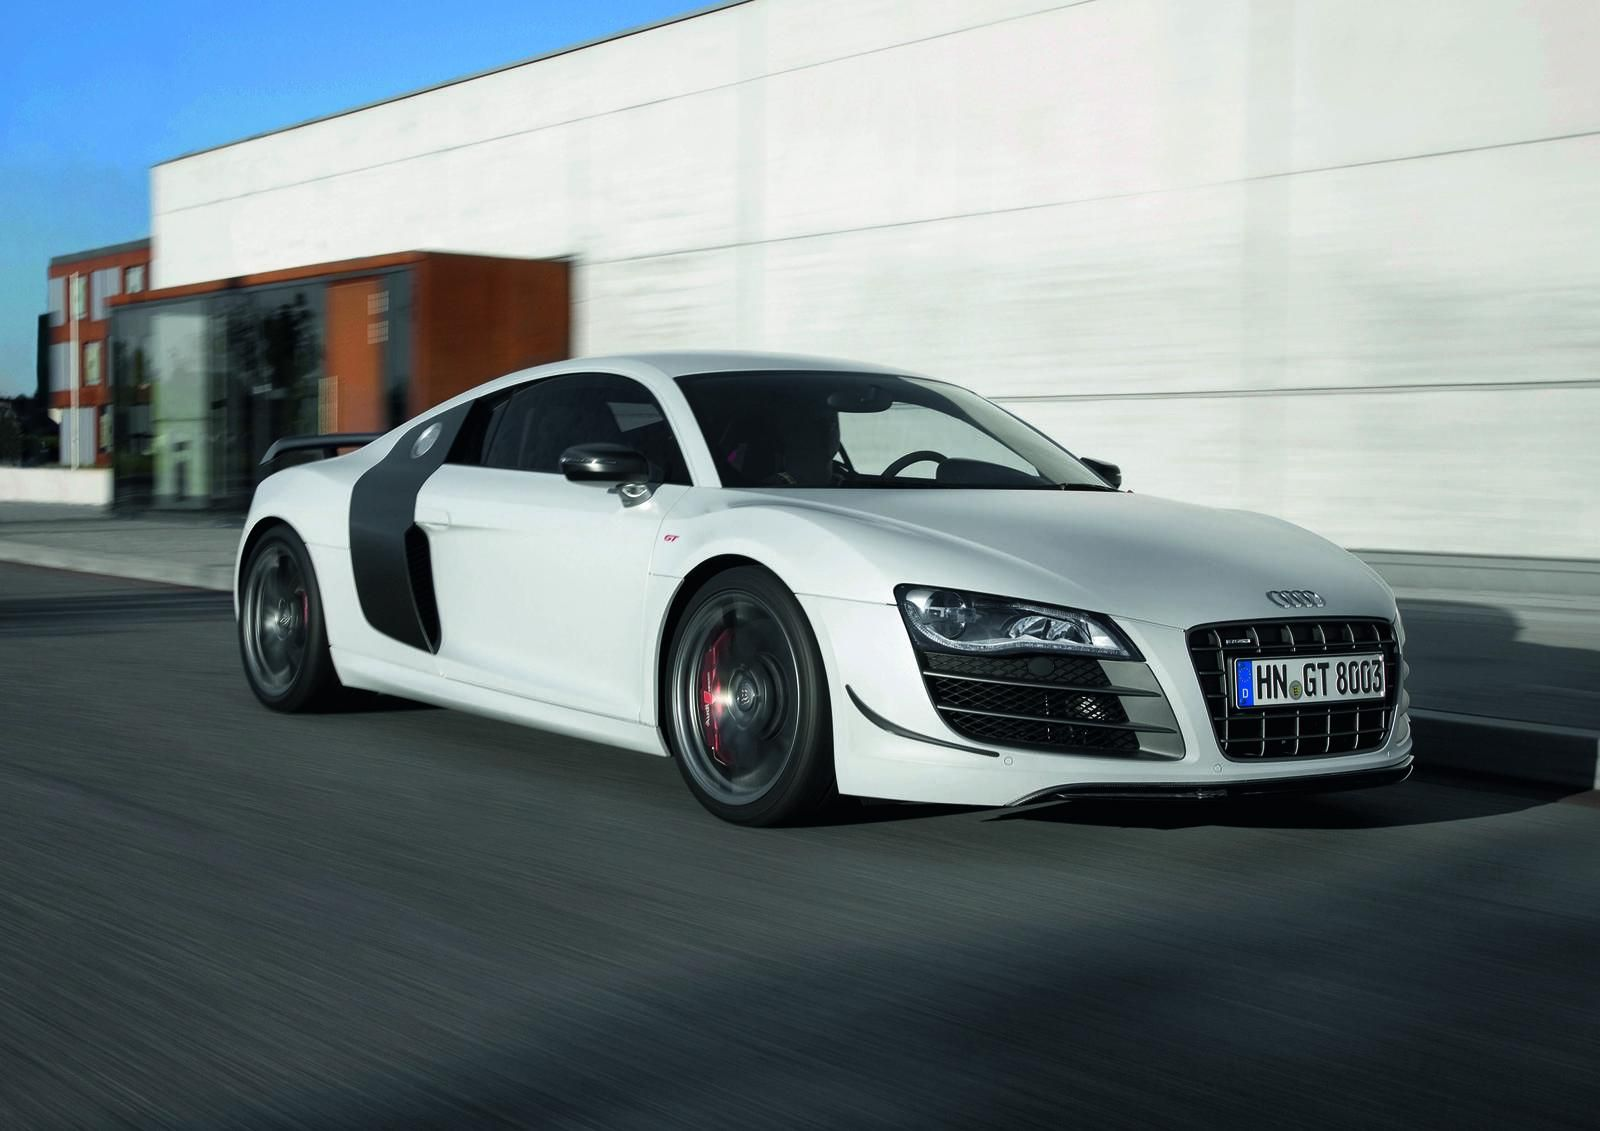 Audi r8 with beautiful woman in sexy stockings cars pinterest sexy stockings audi r8 and audi